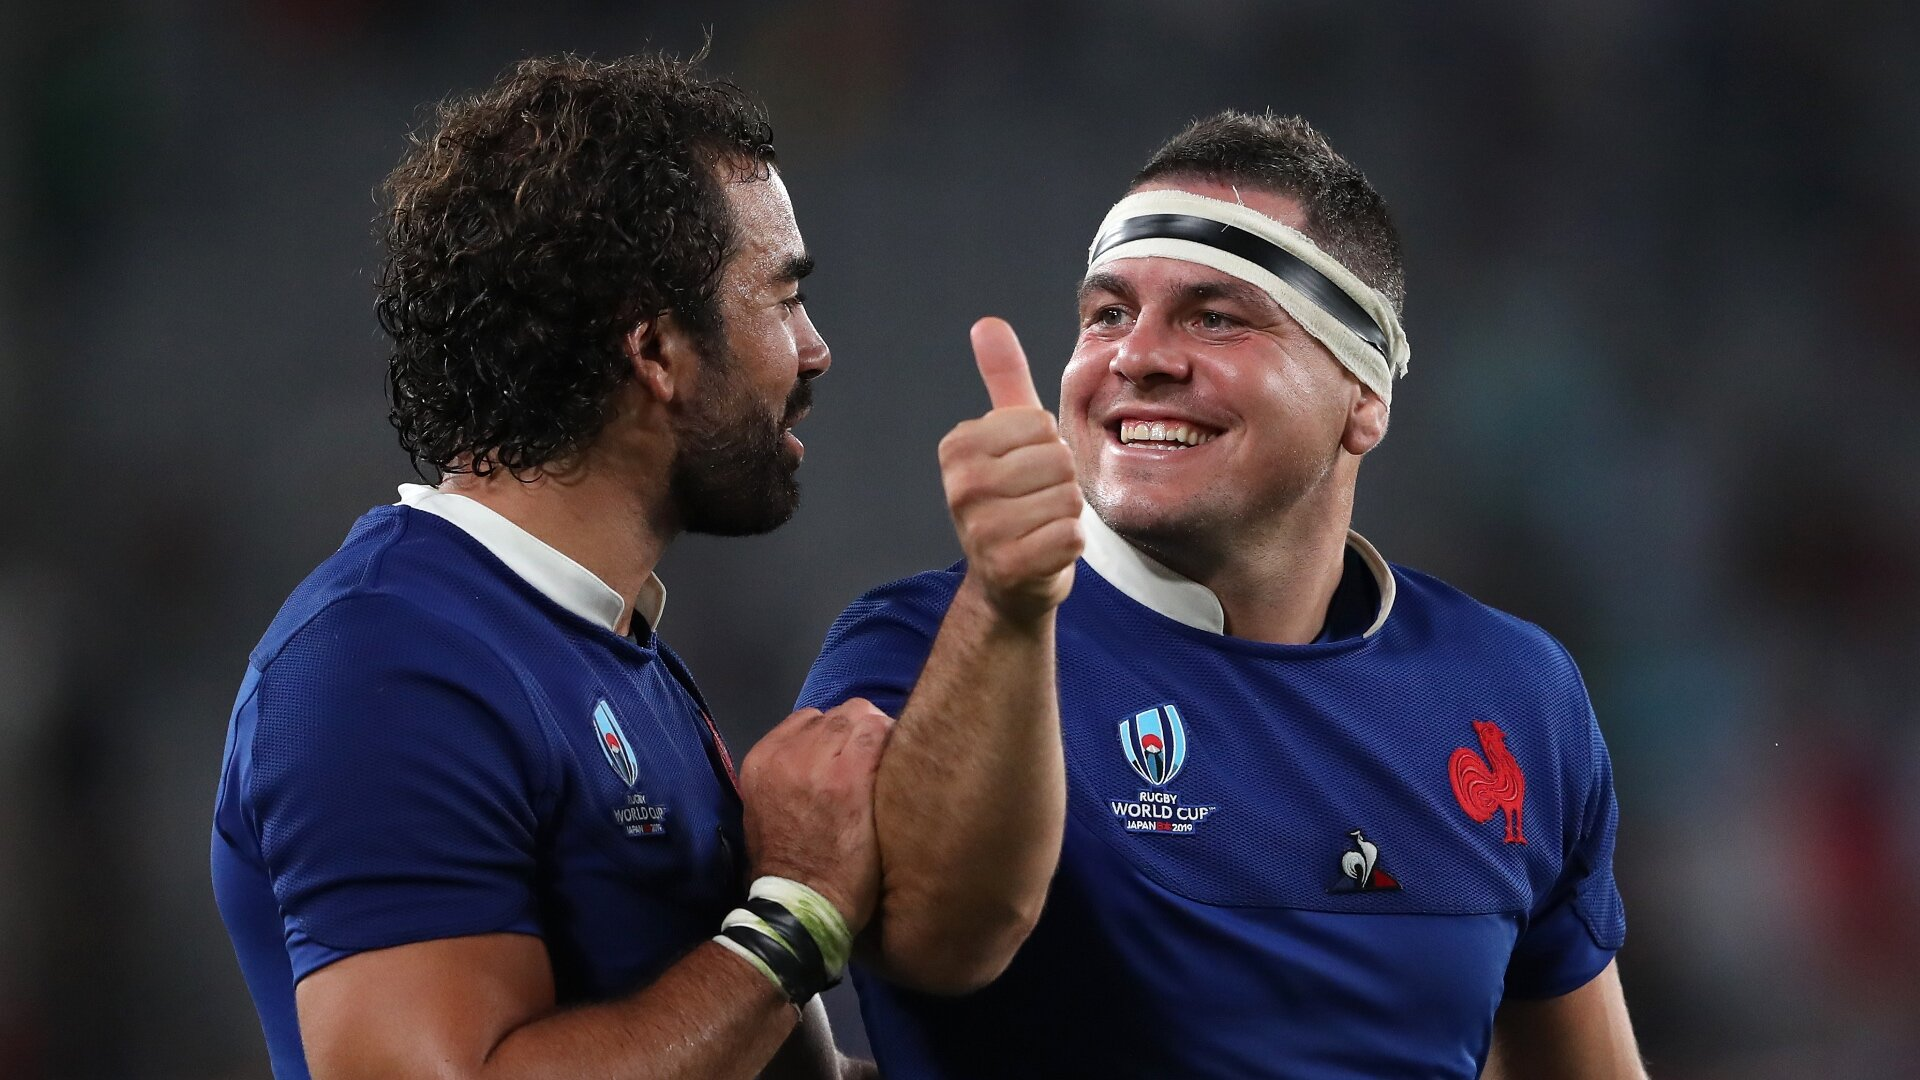 One of France's five changes suggests a truce in alleged strained relationships between players and management